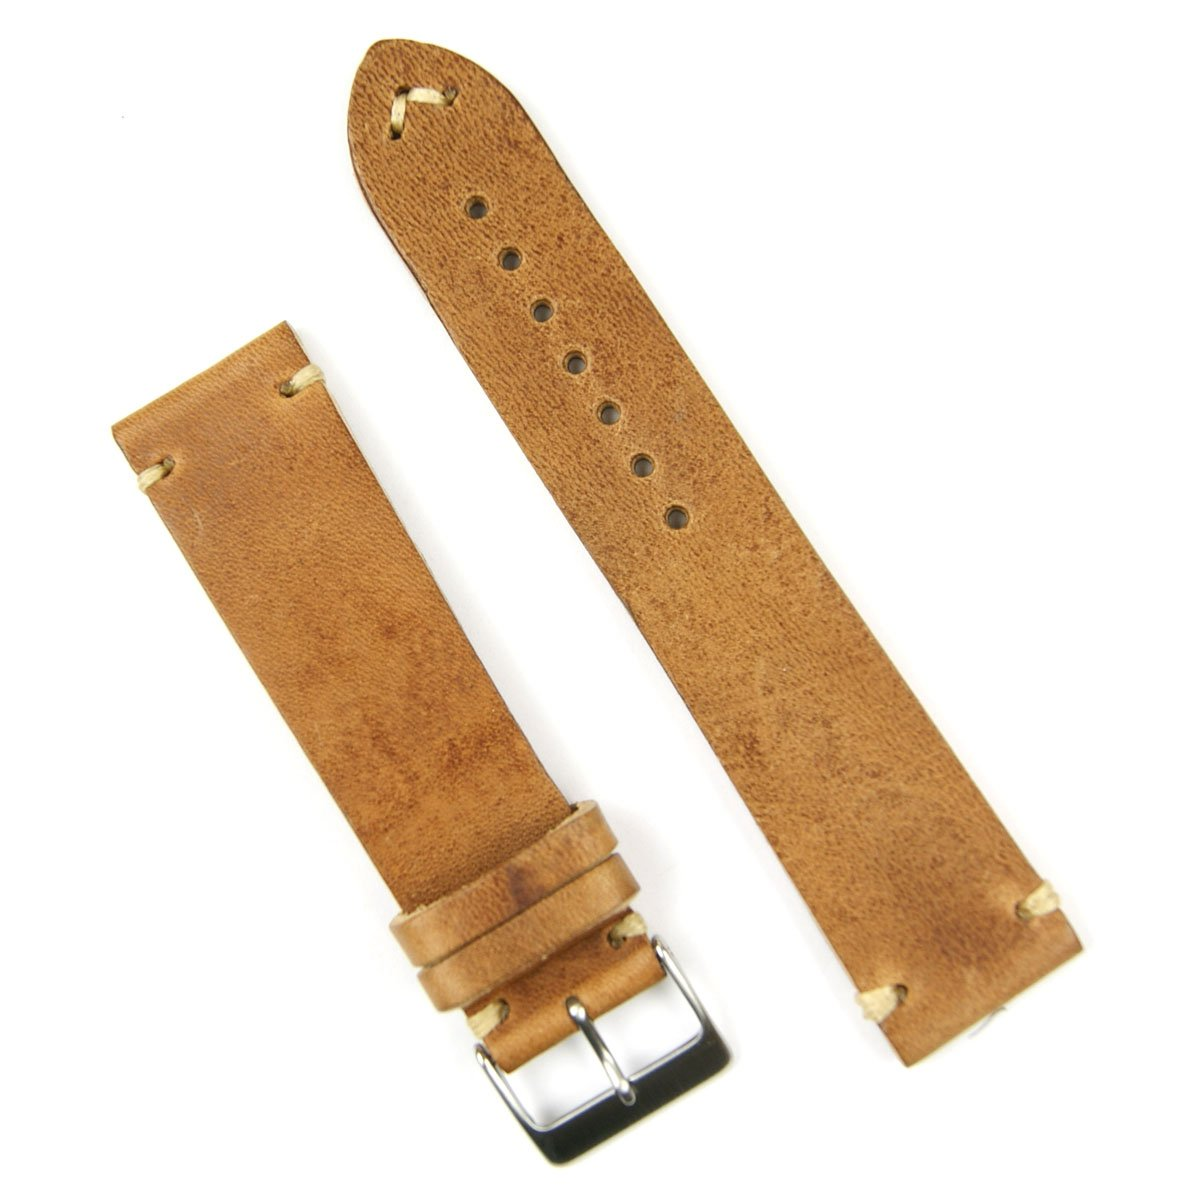 B & R Bands 21mm Oak Classic Vintage Italian Leather Watch Band Strap